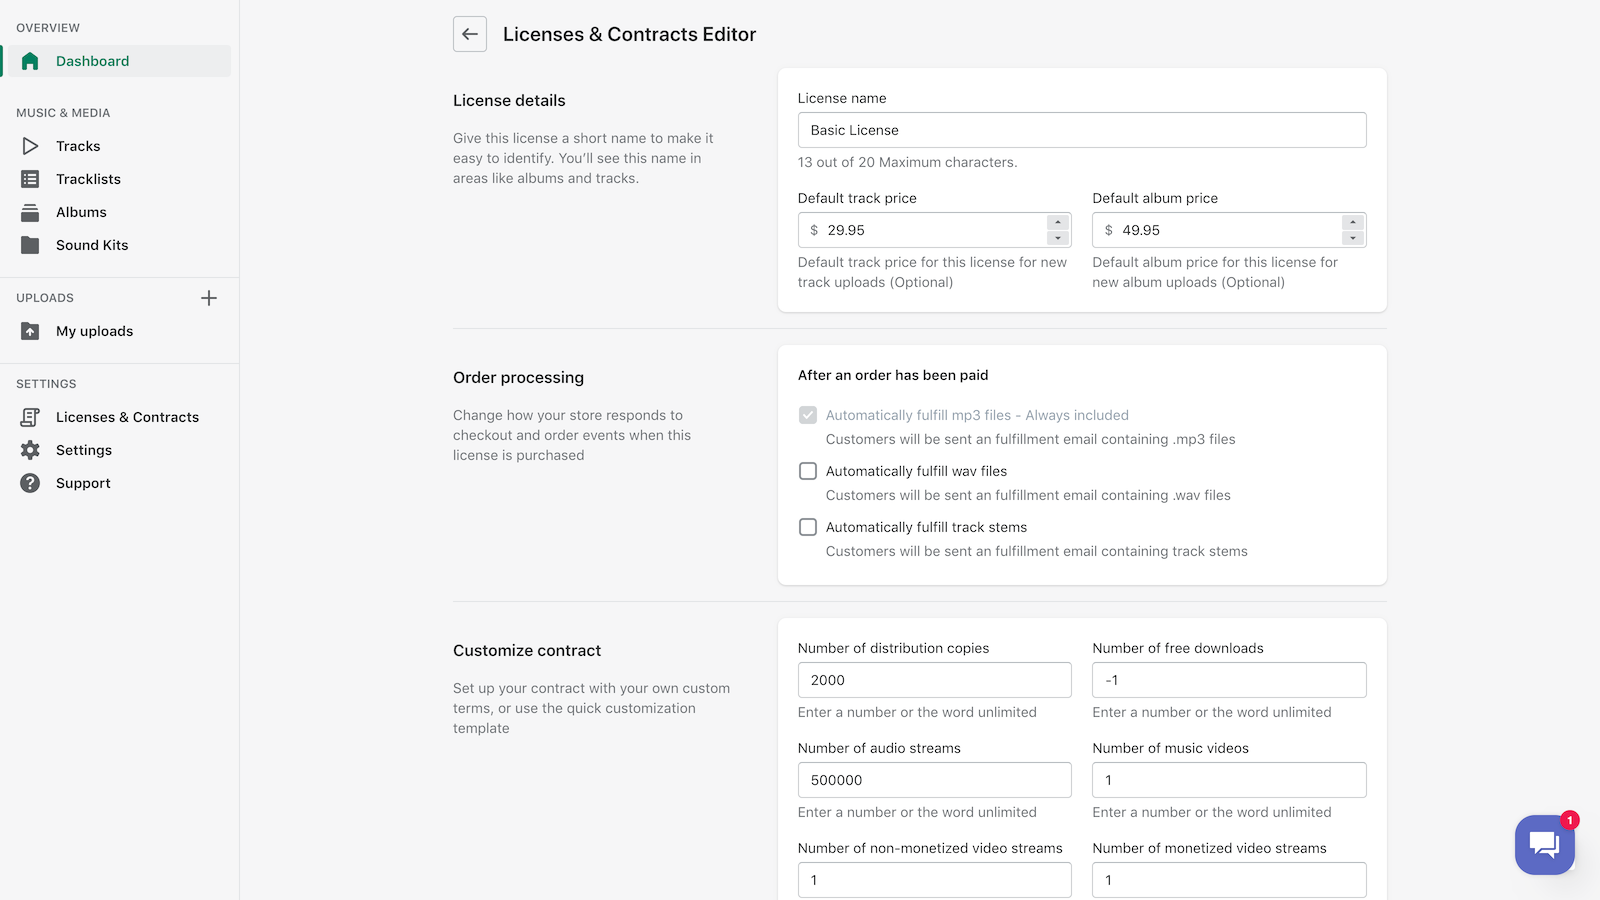 Create Licenses & Contracts